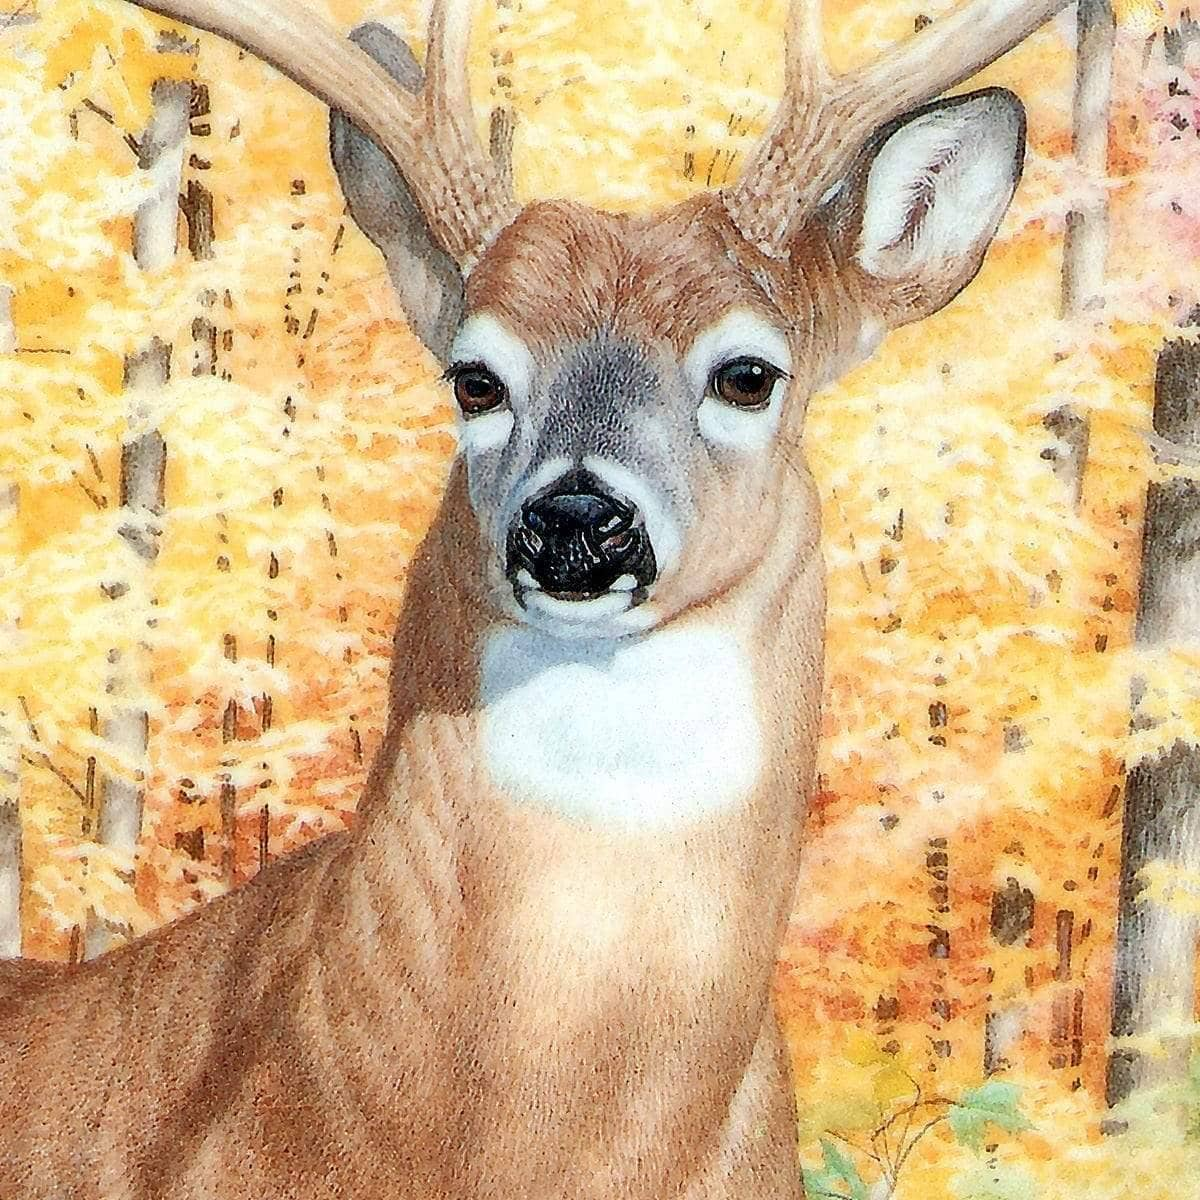 Autumn Deer - Art Print by Glen Loates from the Glen Loates Store